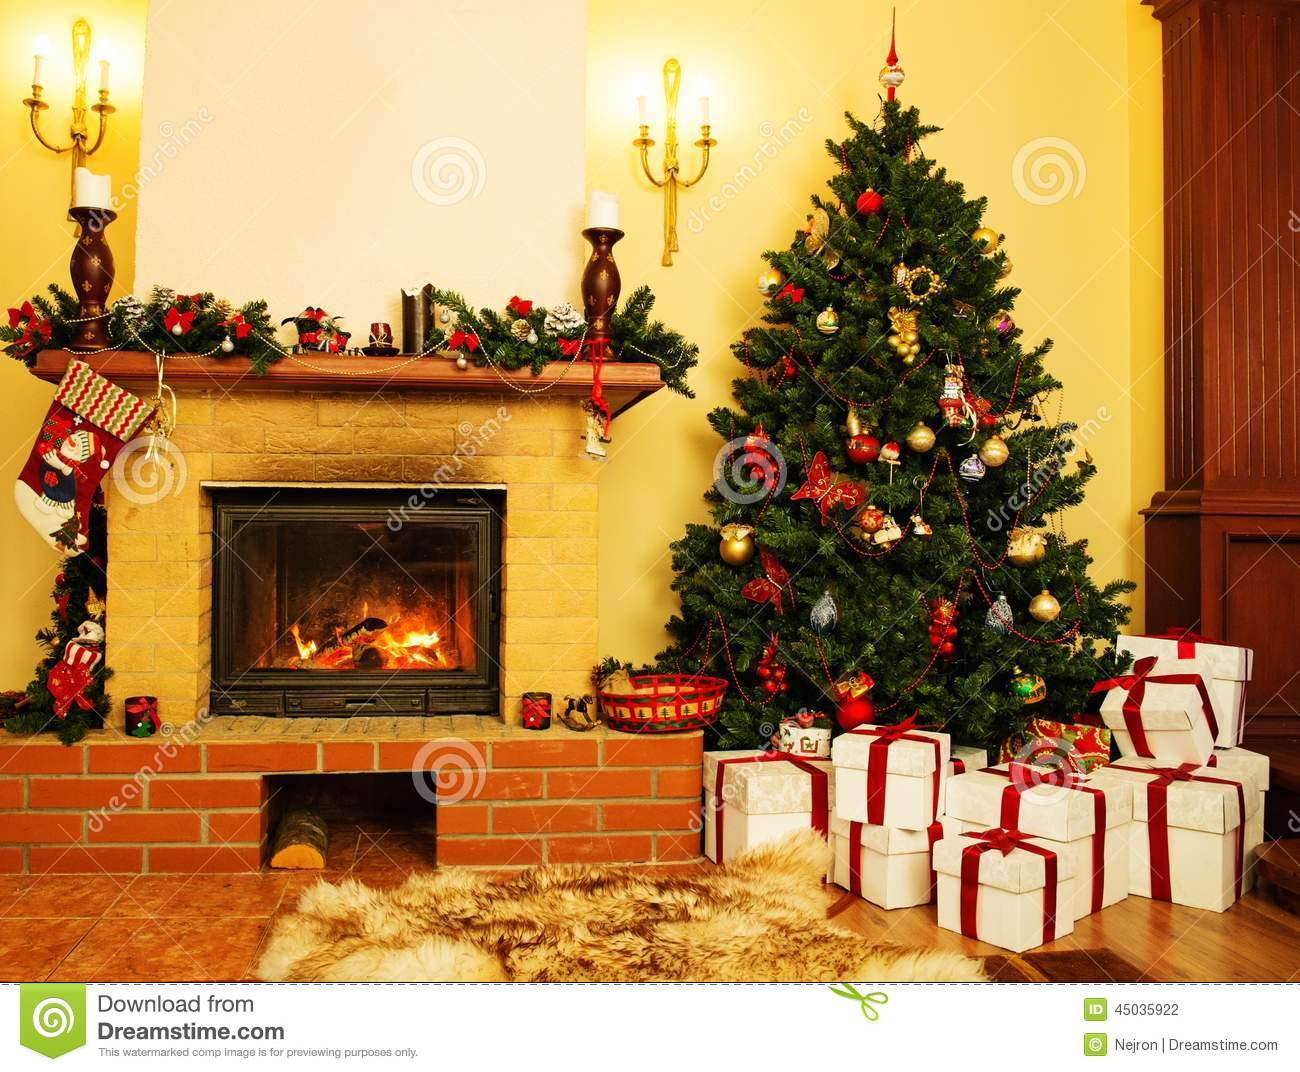 No l a d cor l 39 int rieur de maison photo stock image du for Decoration noel interieur